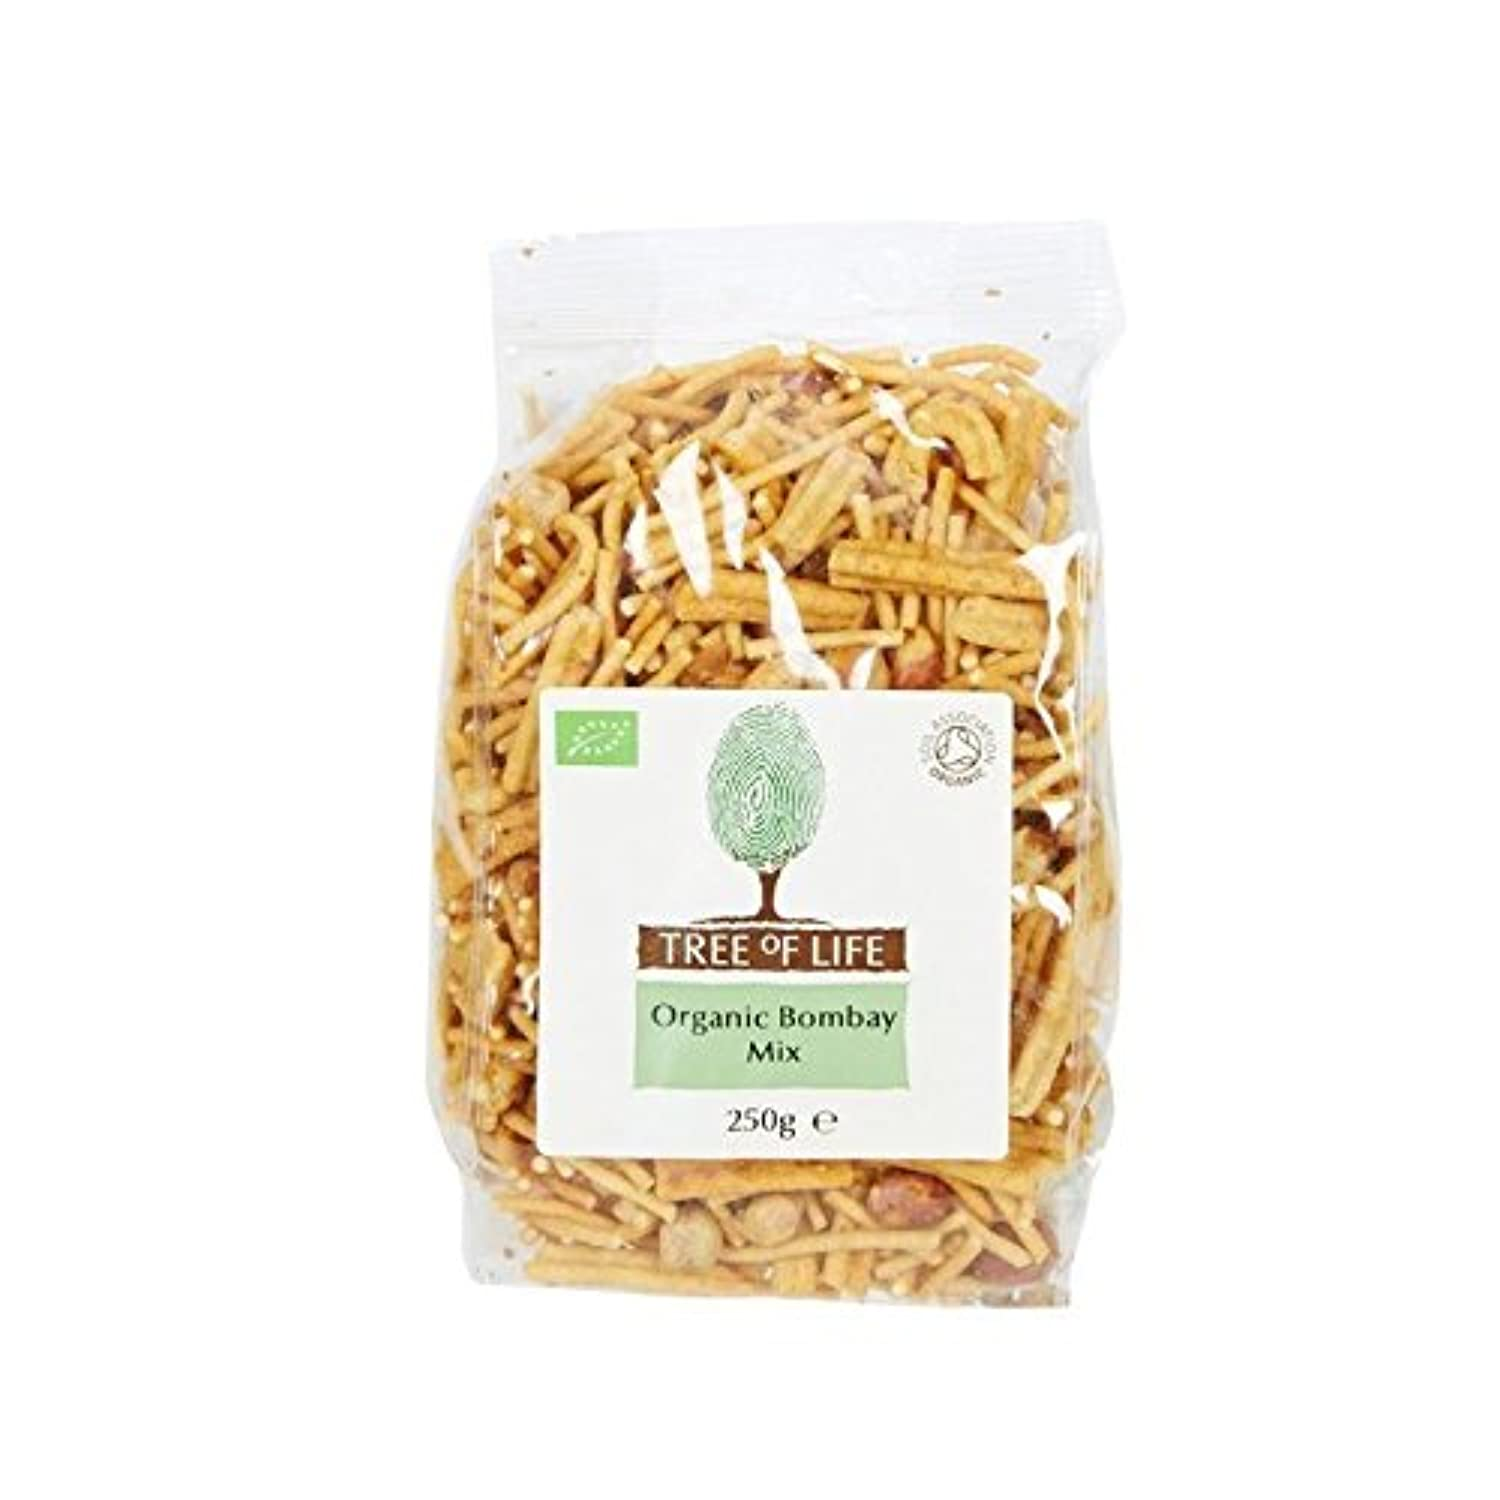 Tree of Life Organic Bombay Mix 250g - Pack of 2